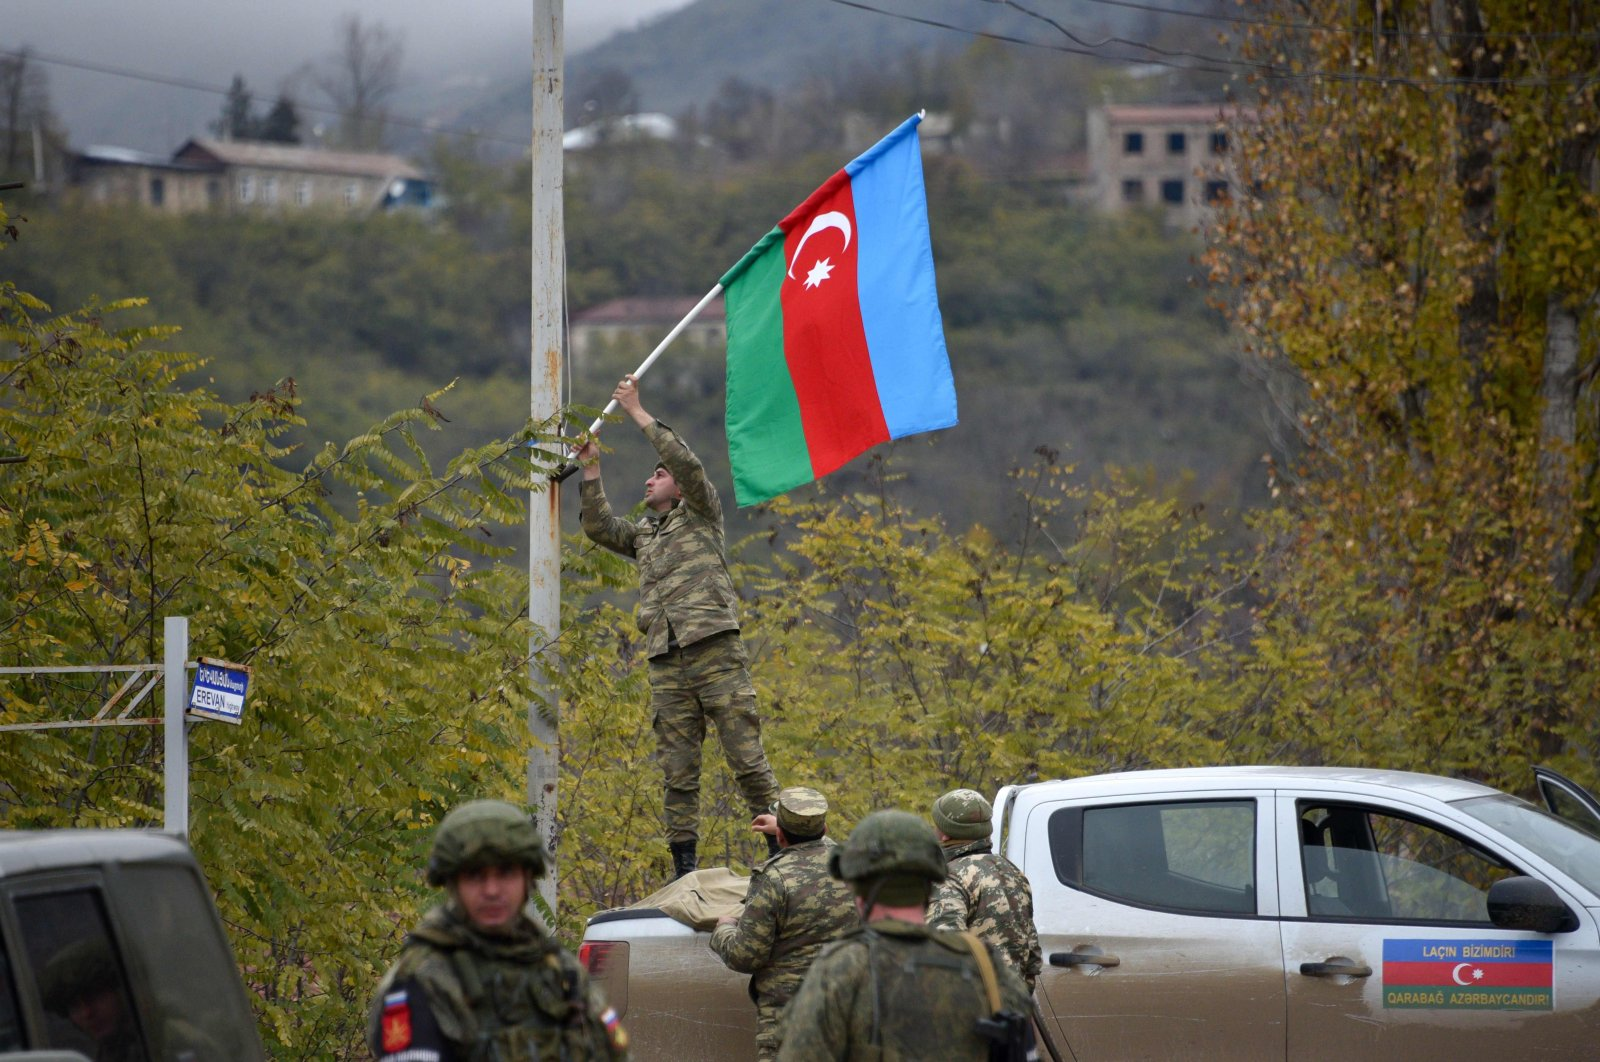 An Azerbaijani soldier fixes a national flag on a lamppost in the town of Lachin, southwestern Azerbaijan, Dec. 1, 2020. (AFP Photo)